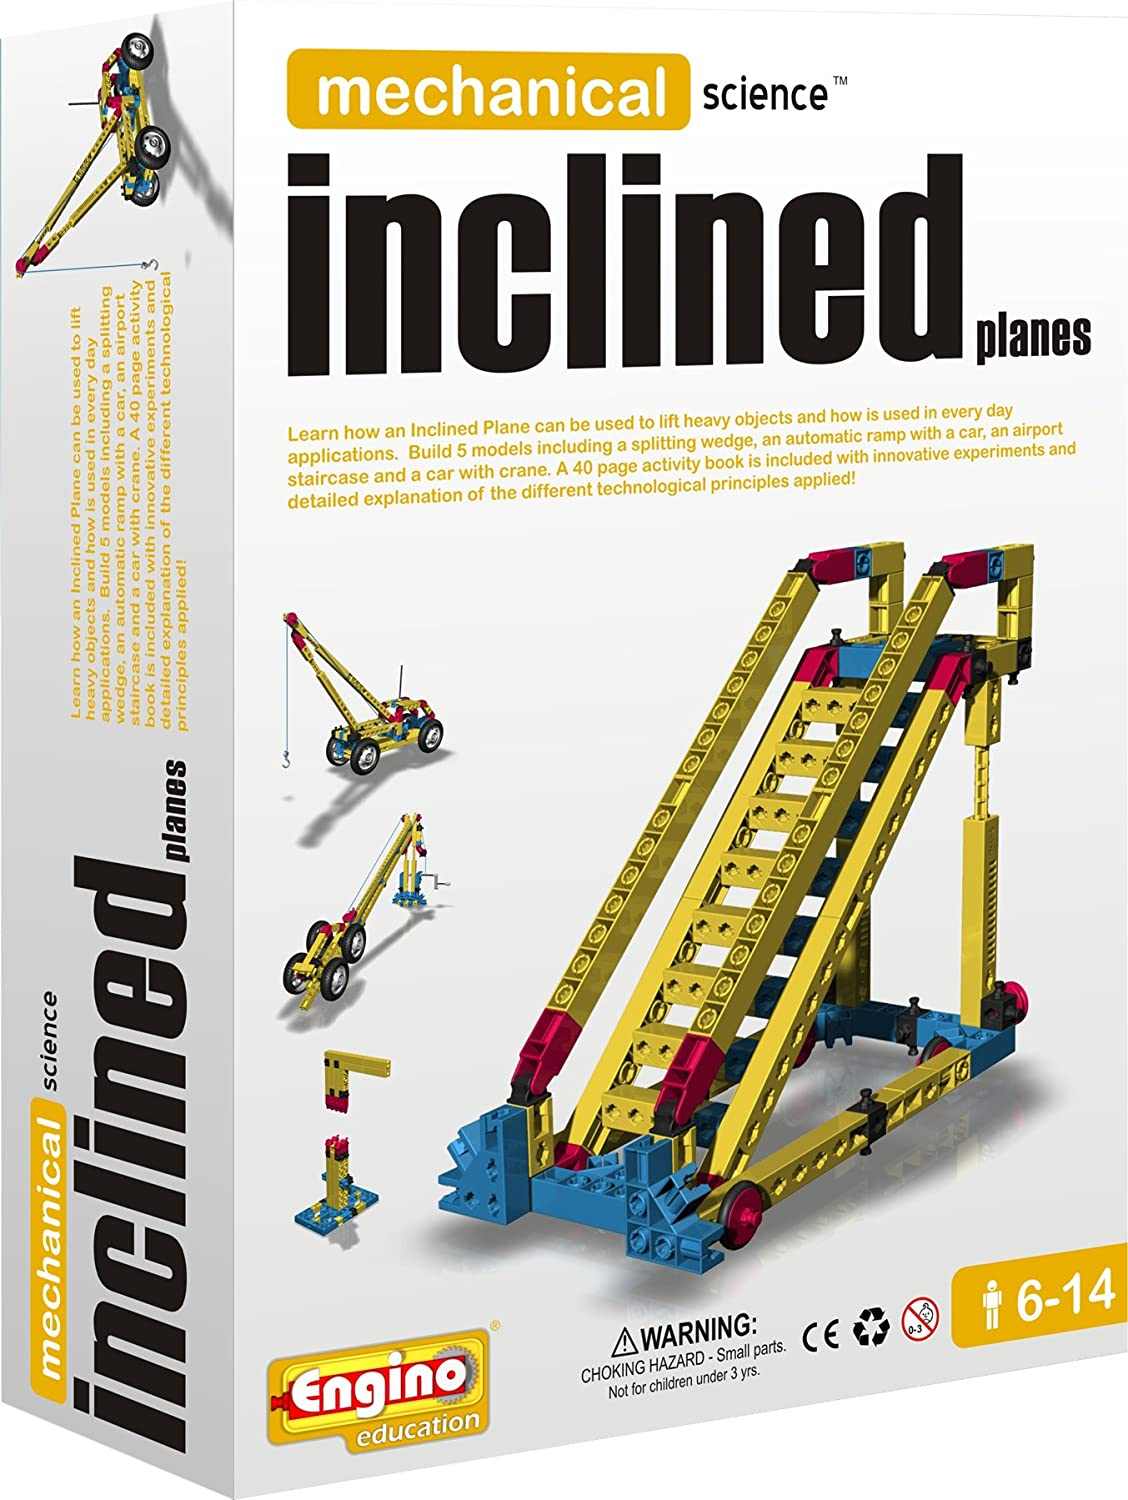 Engino Mechanical Science  Inclined Planes